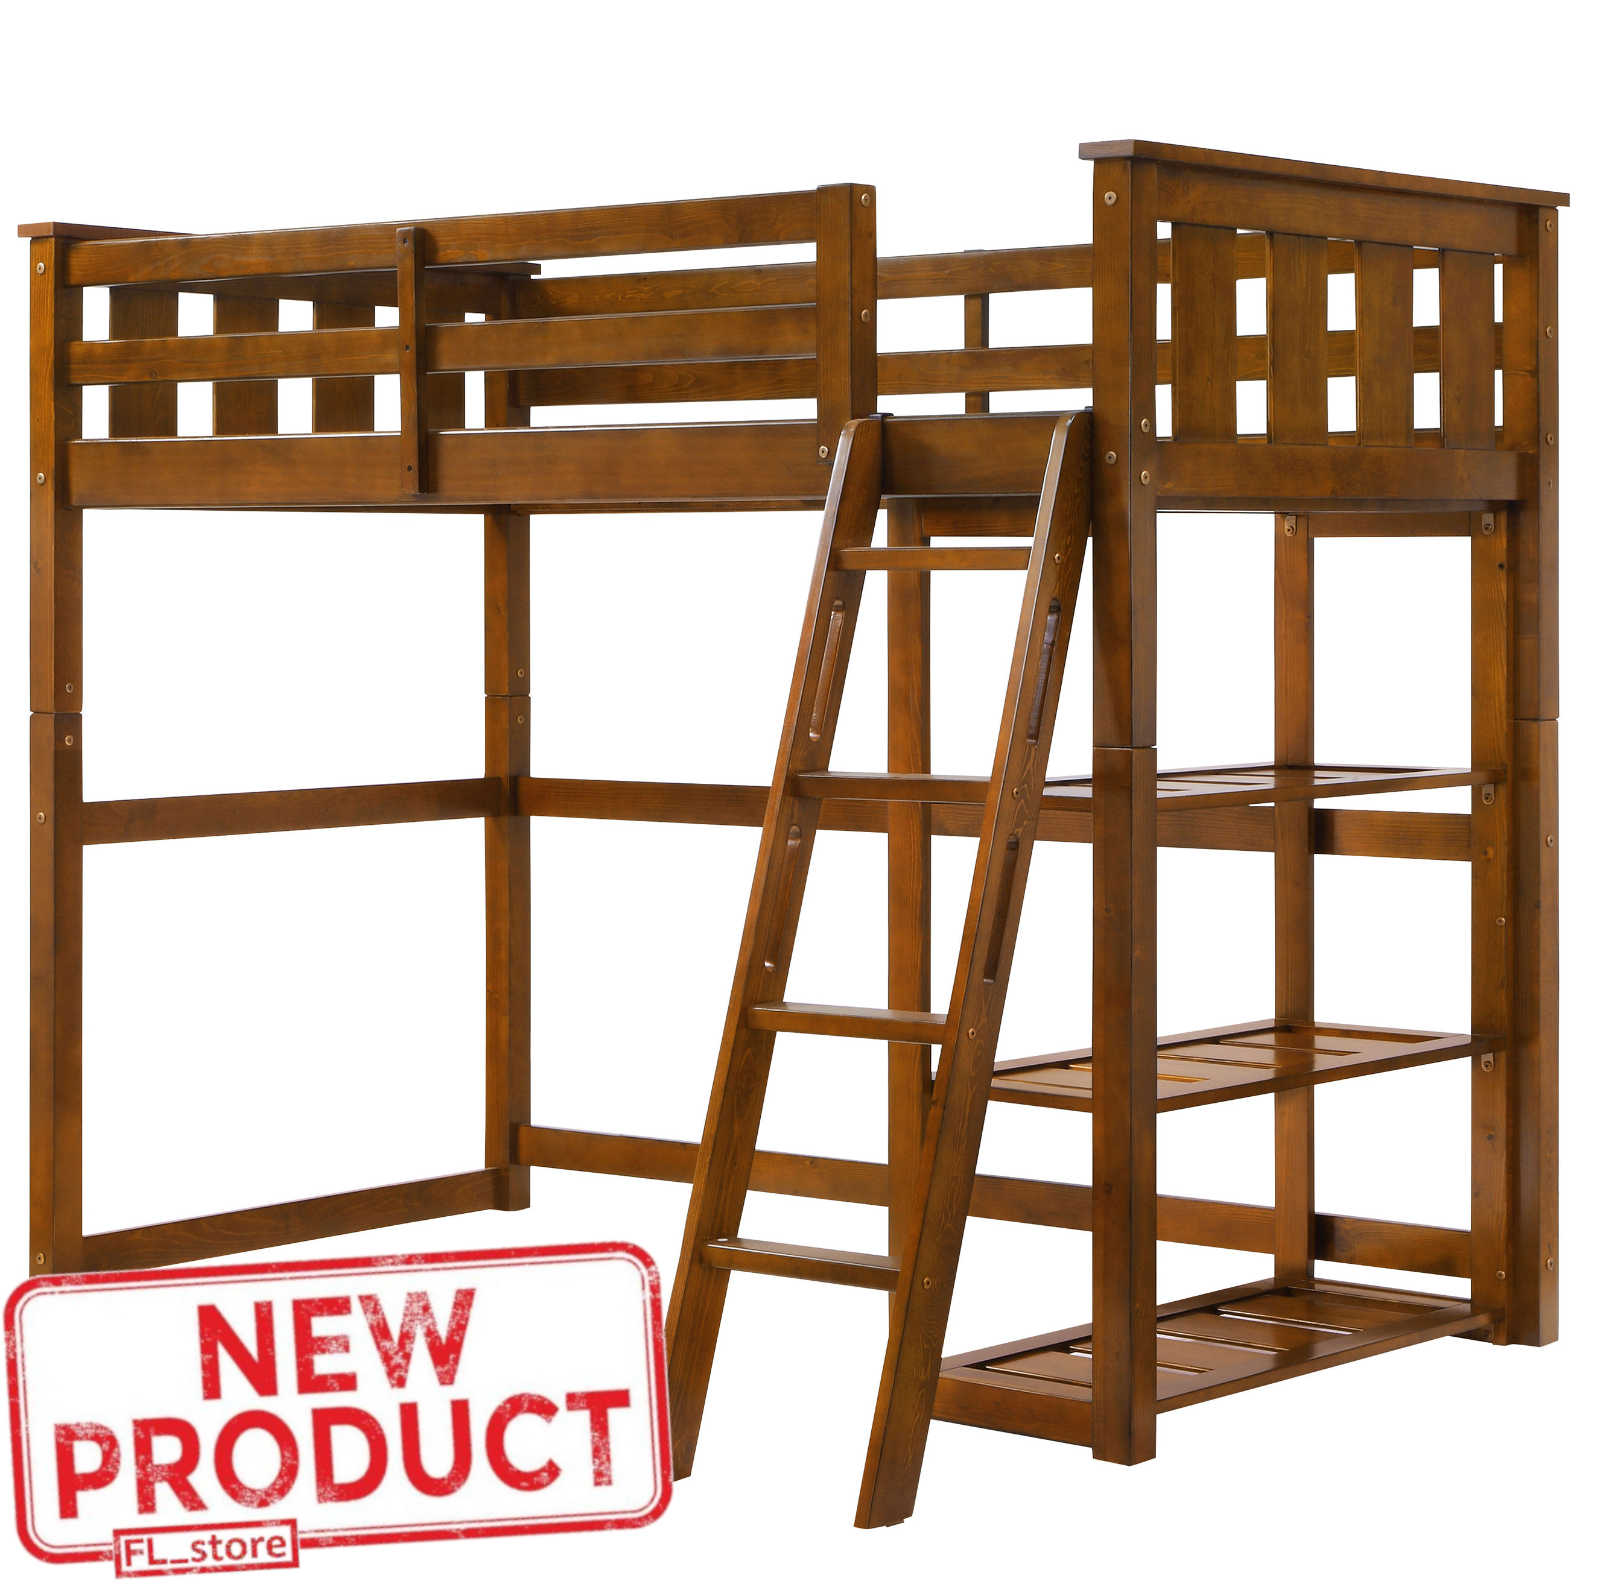 Twin Size Teens Loft Bunk Bed Wooden Home Bedroom Space Save